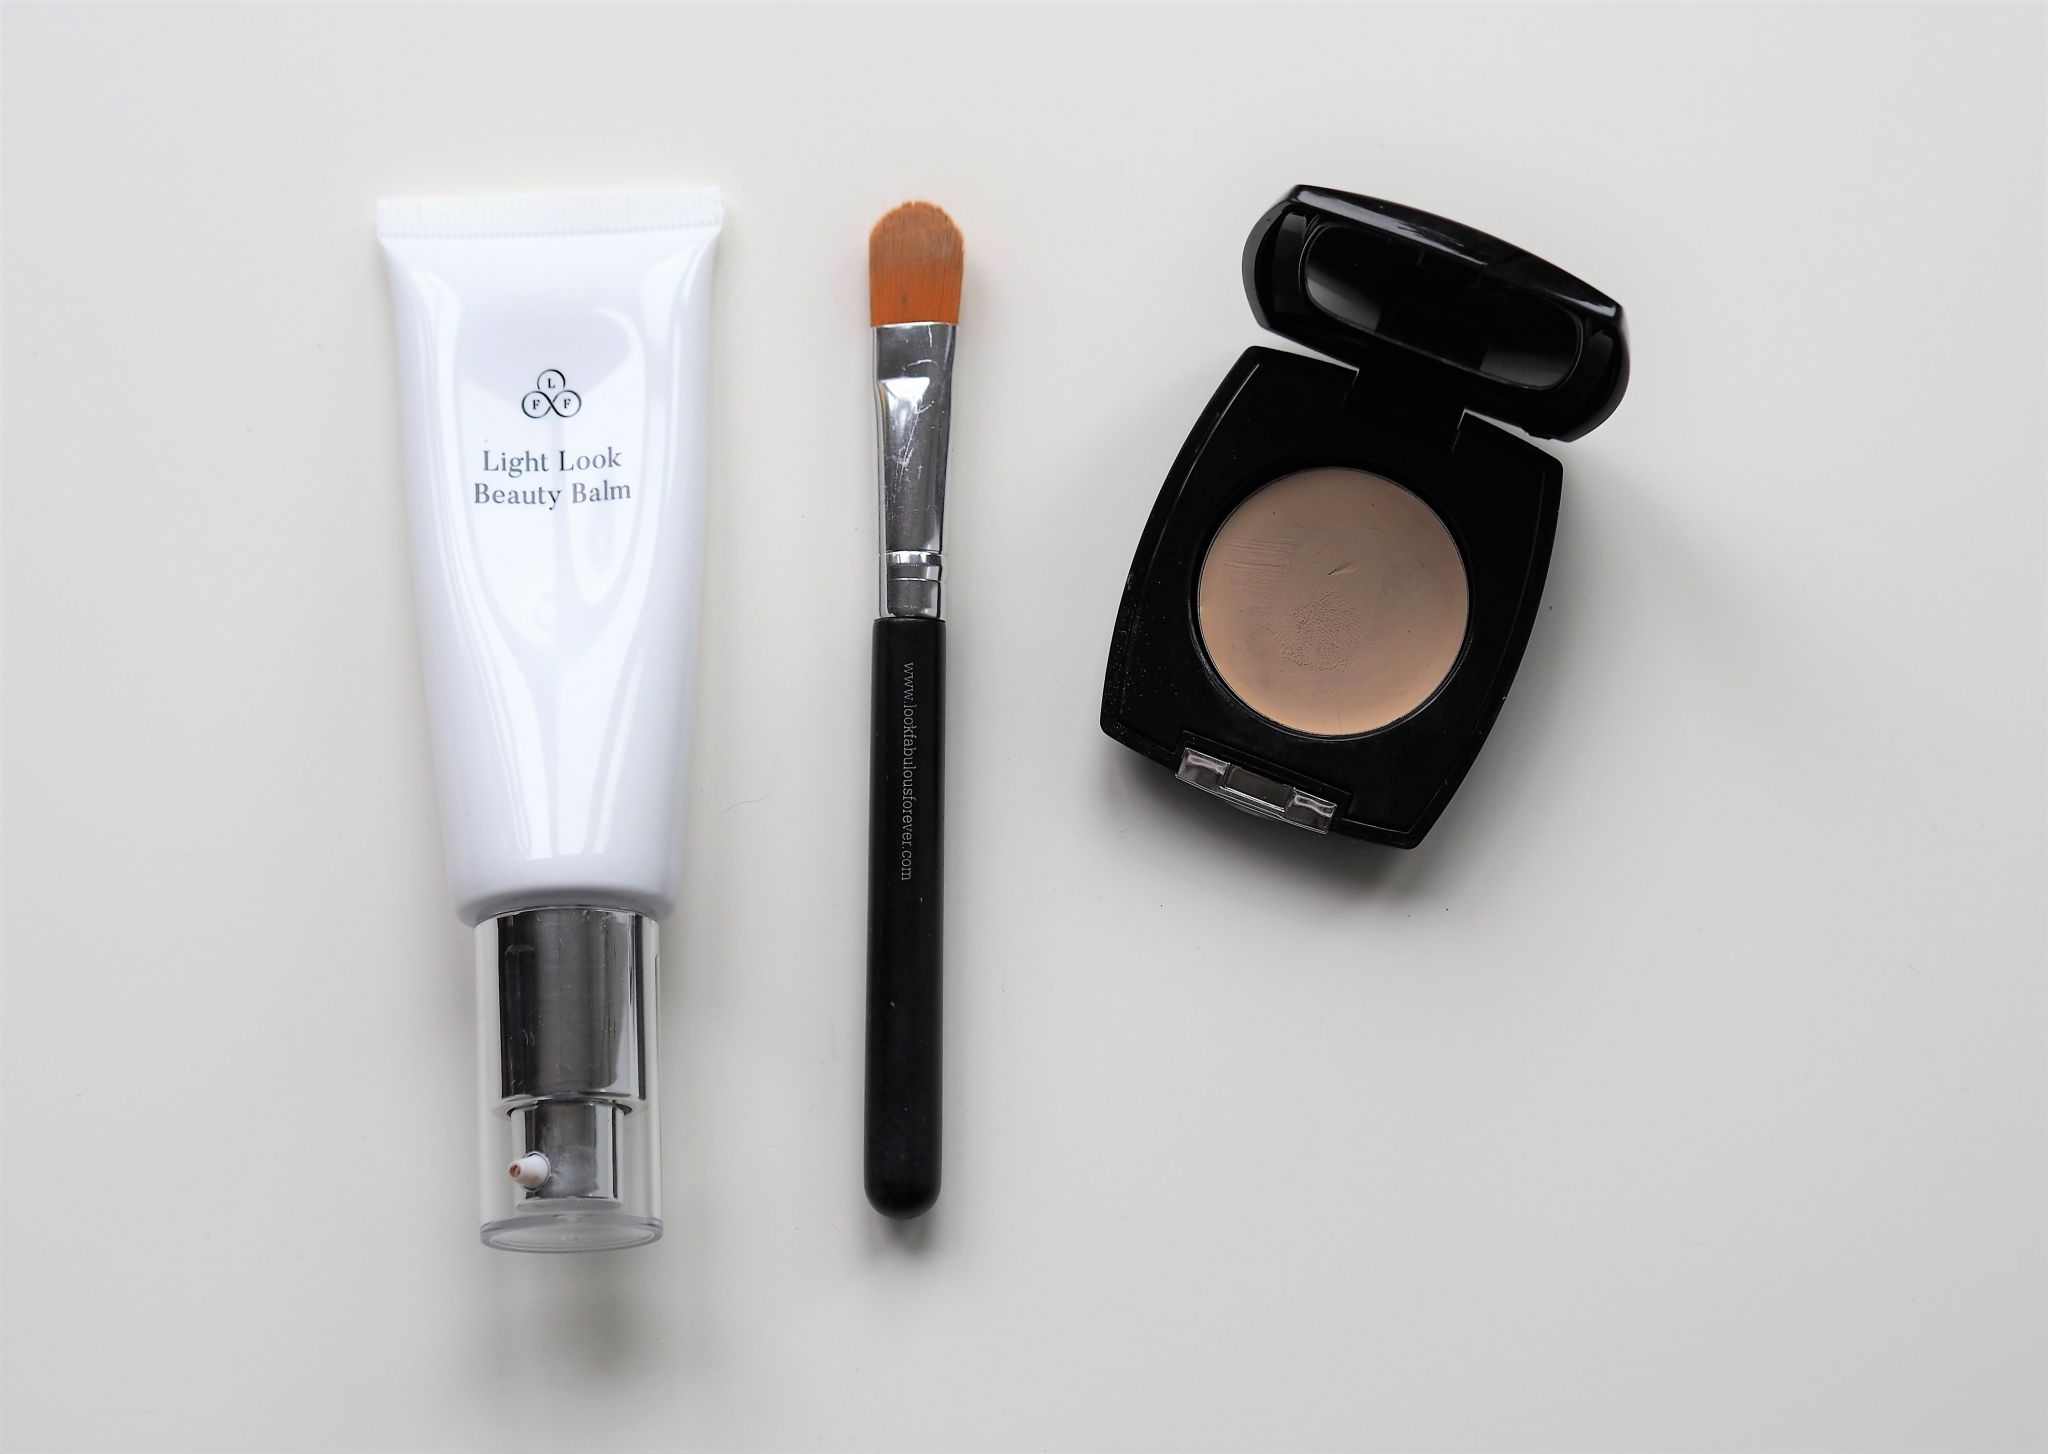 Look Fabulous Forever Light Look Beauty Balm